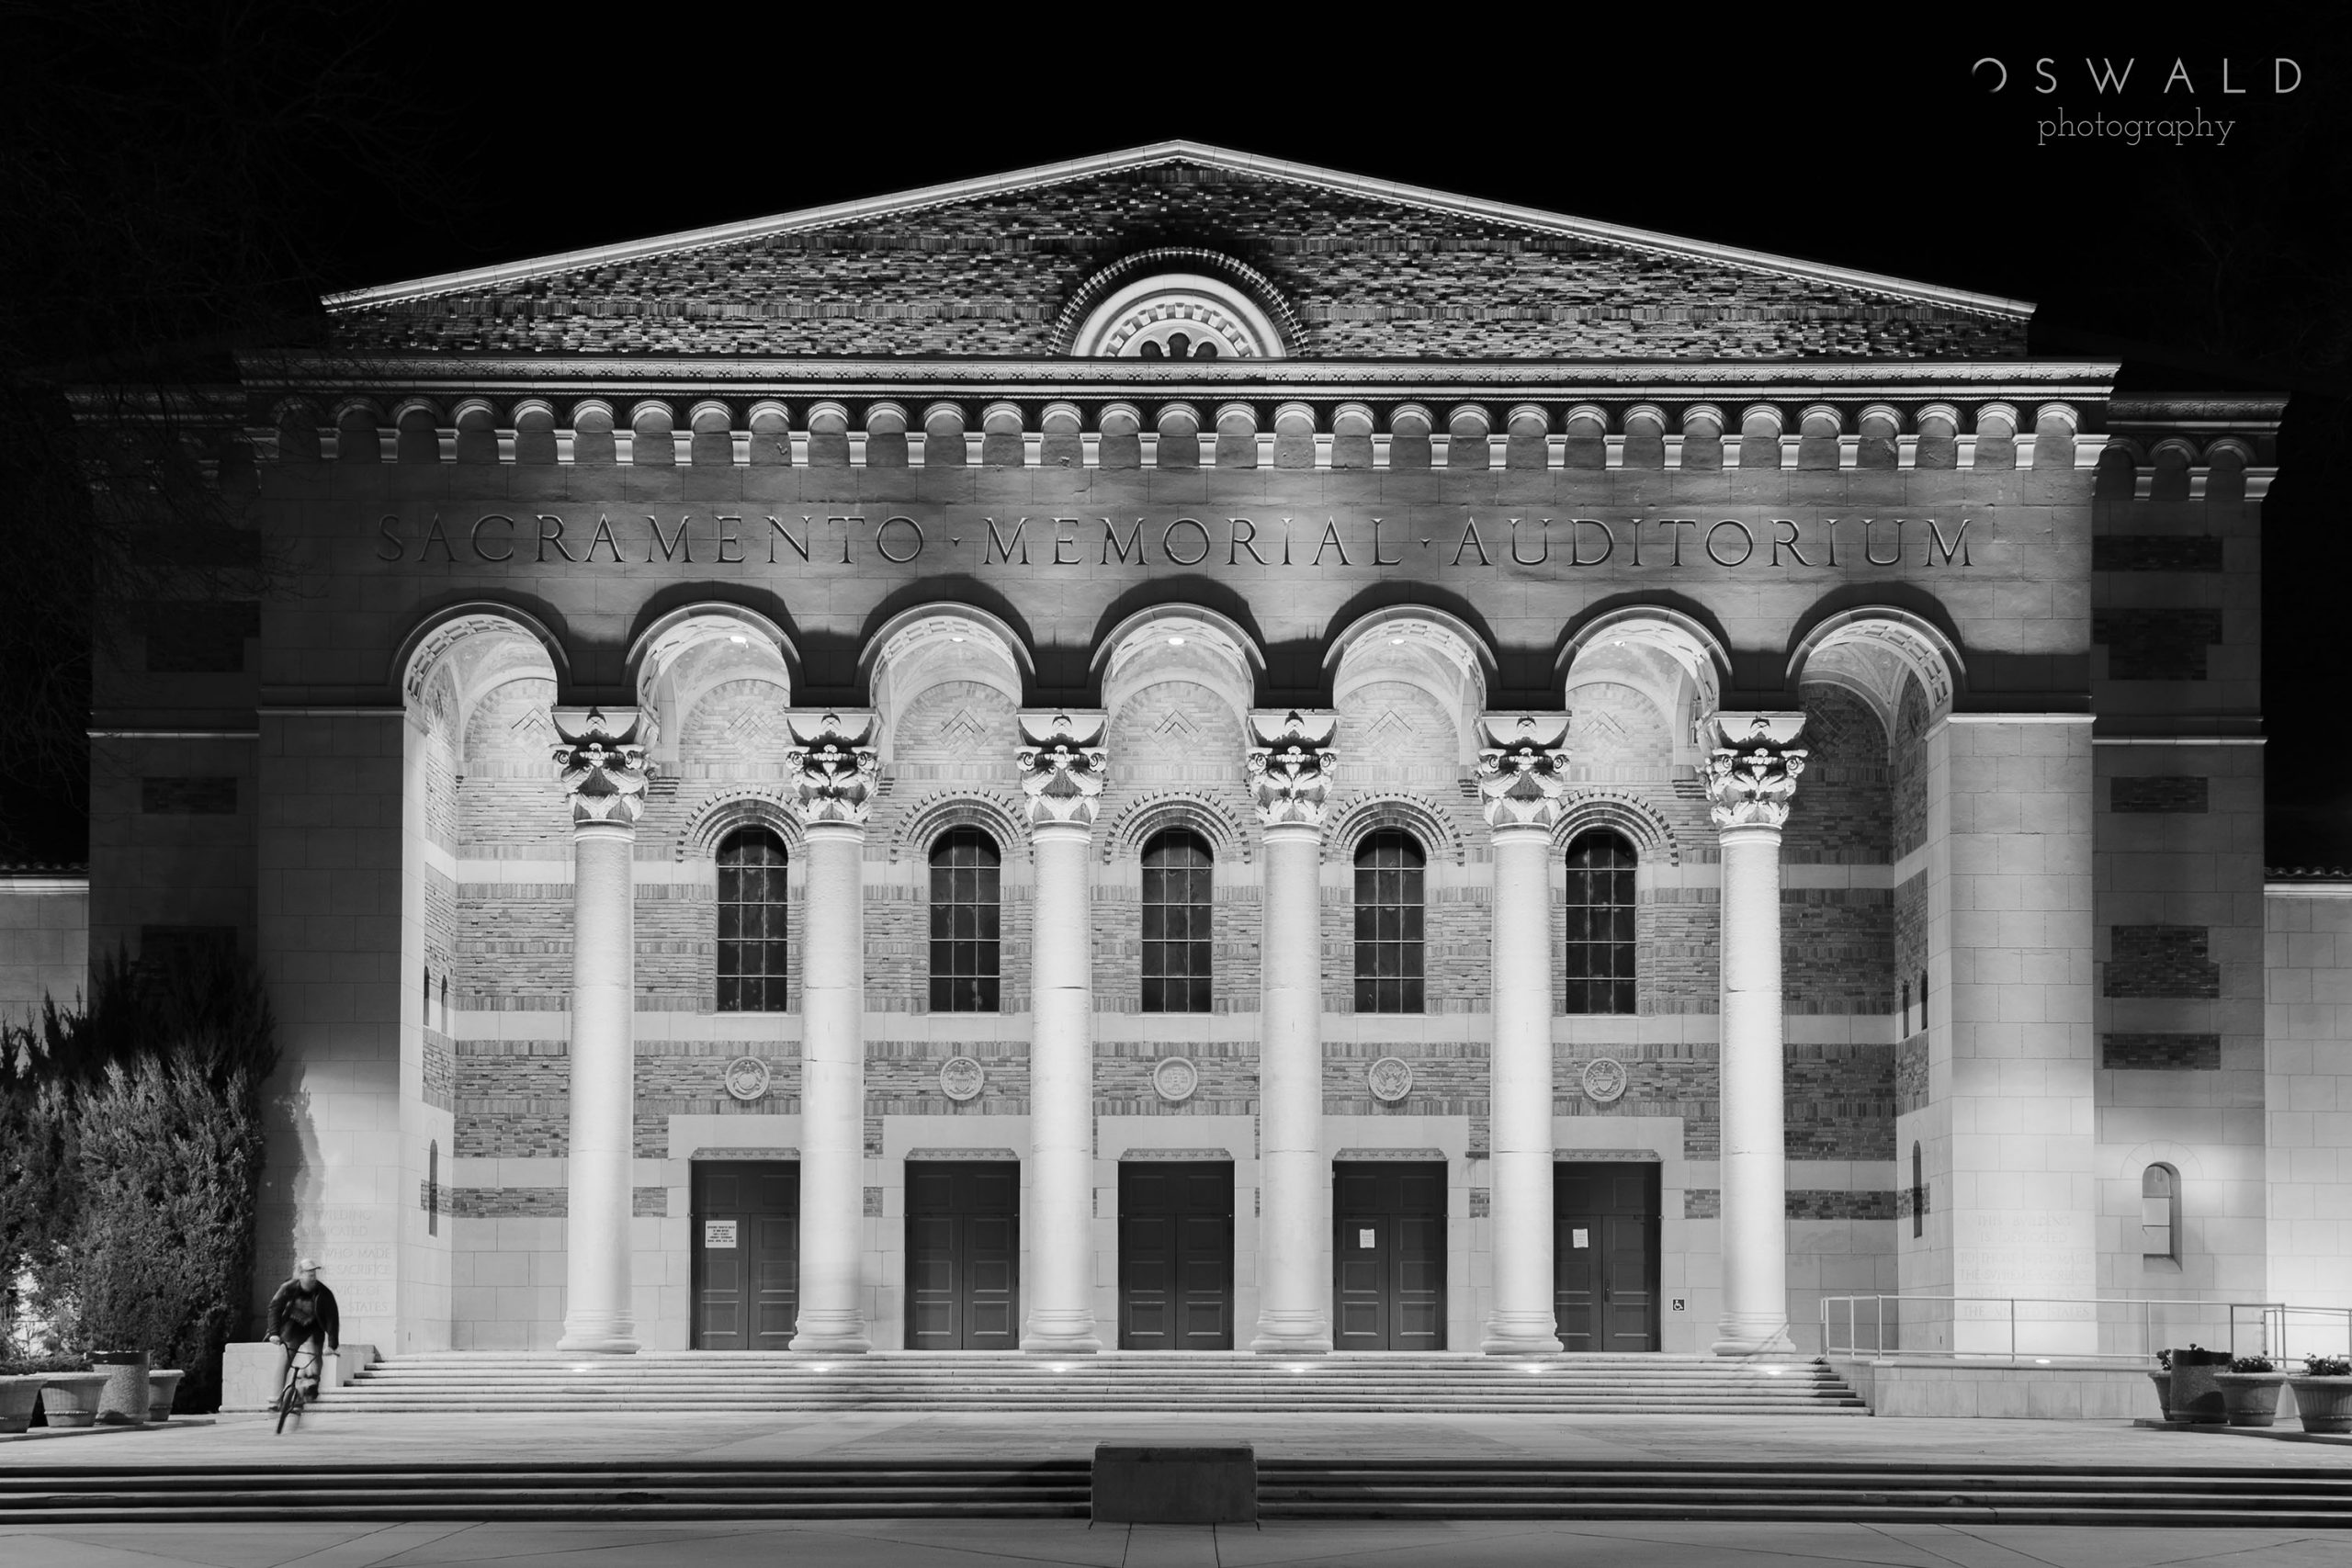 Black and white photo of Sacramento's Memorial Auditorium